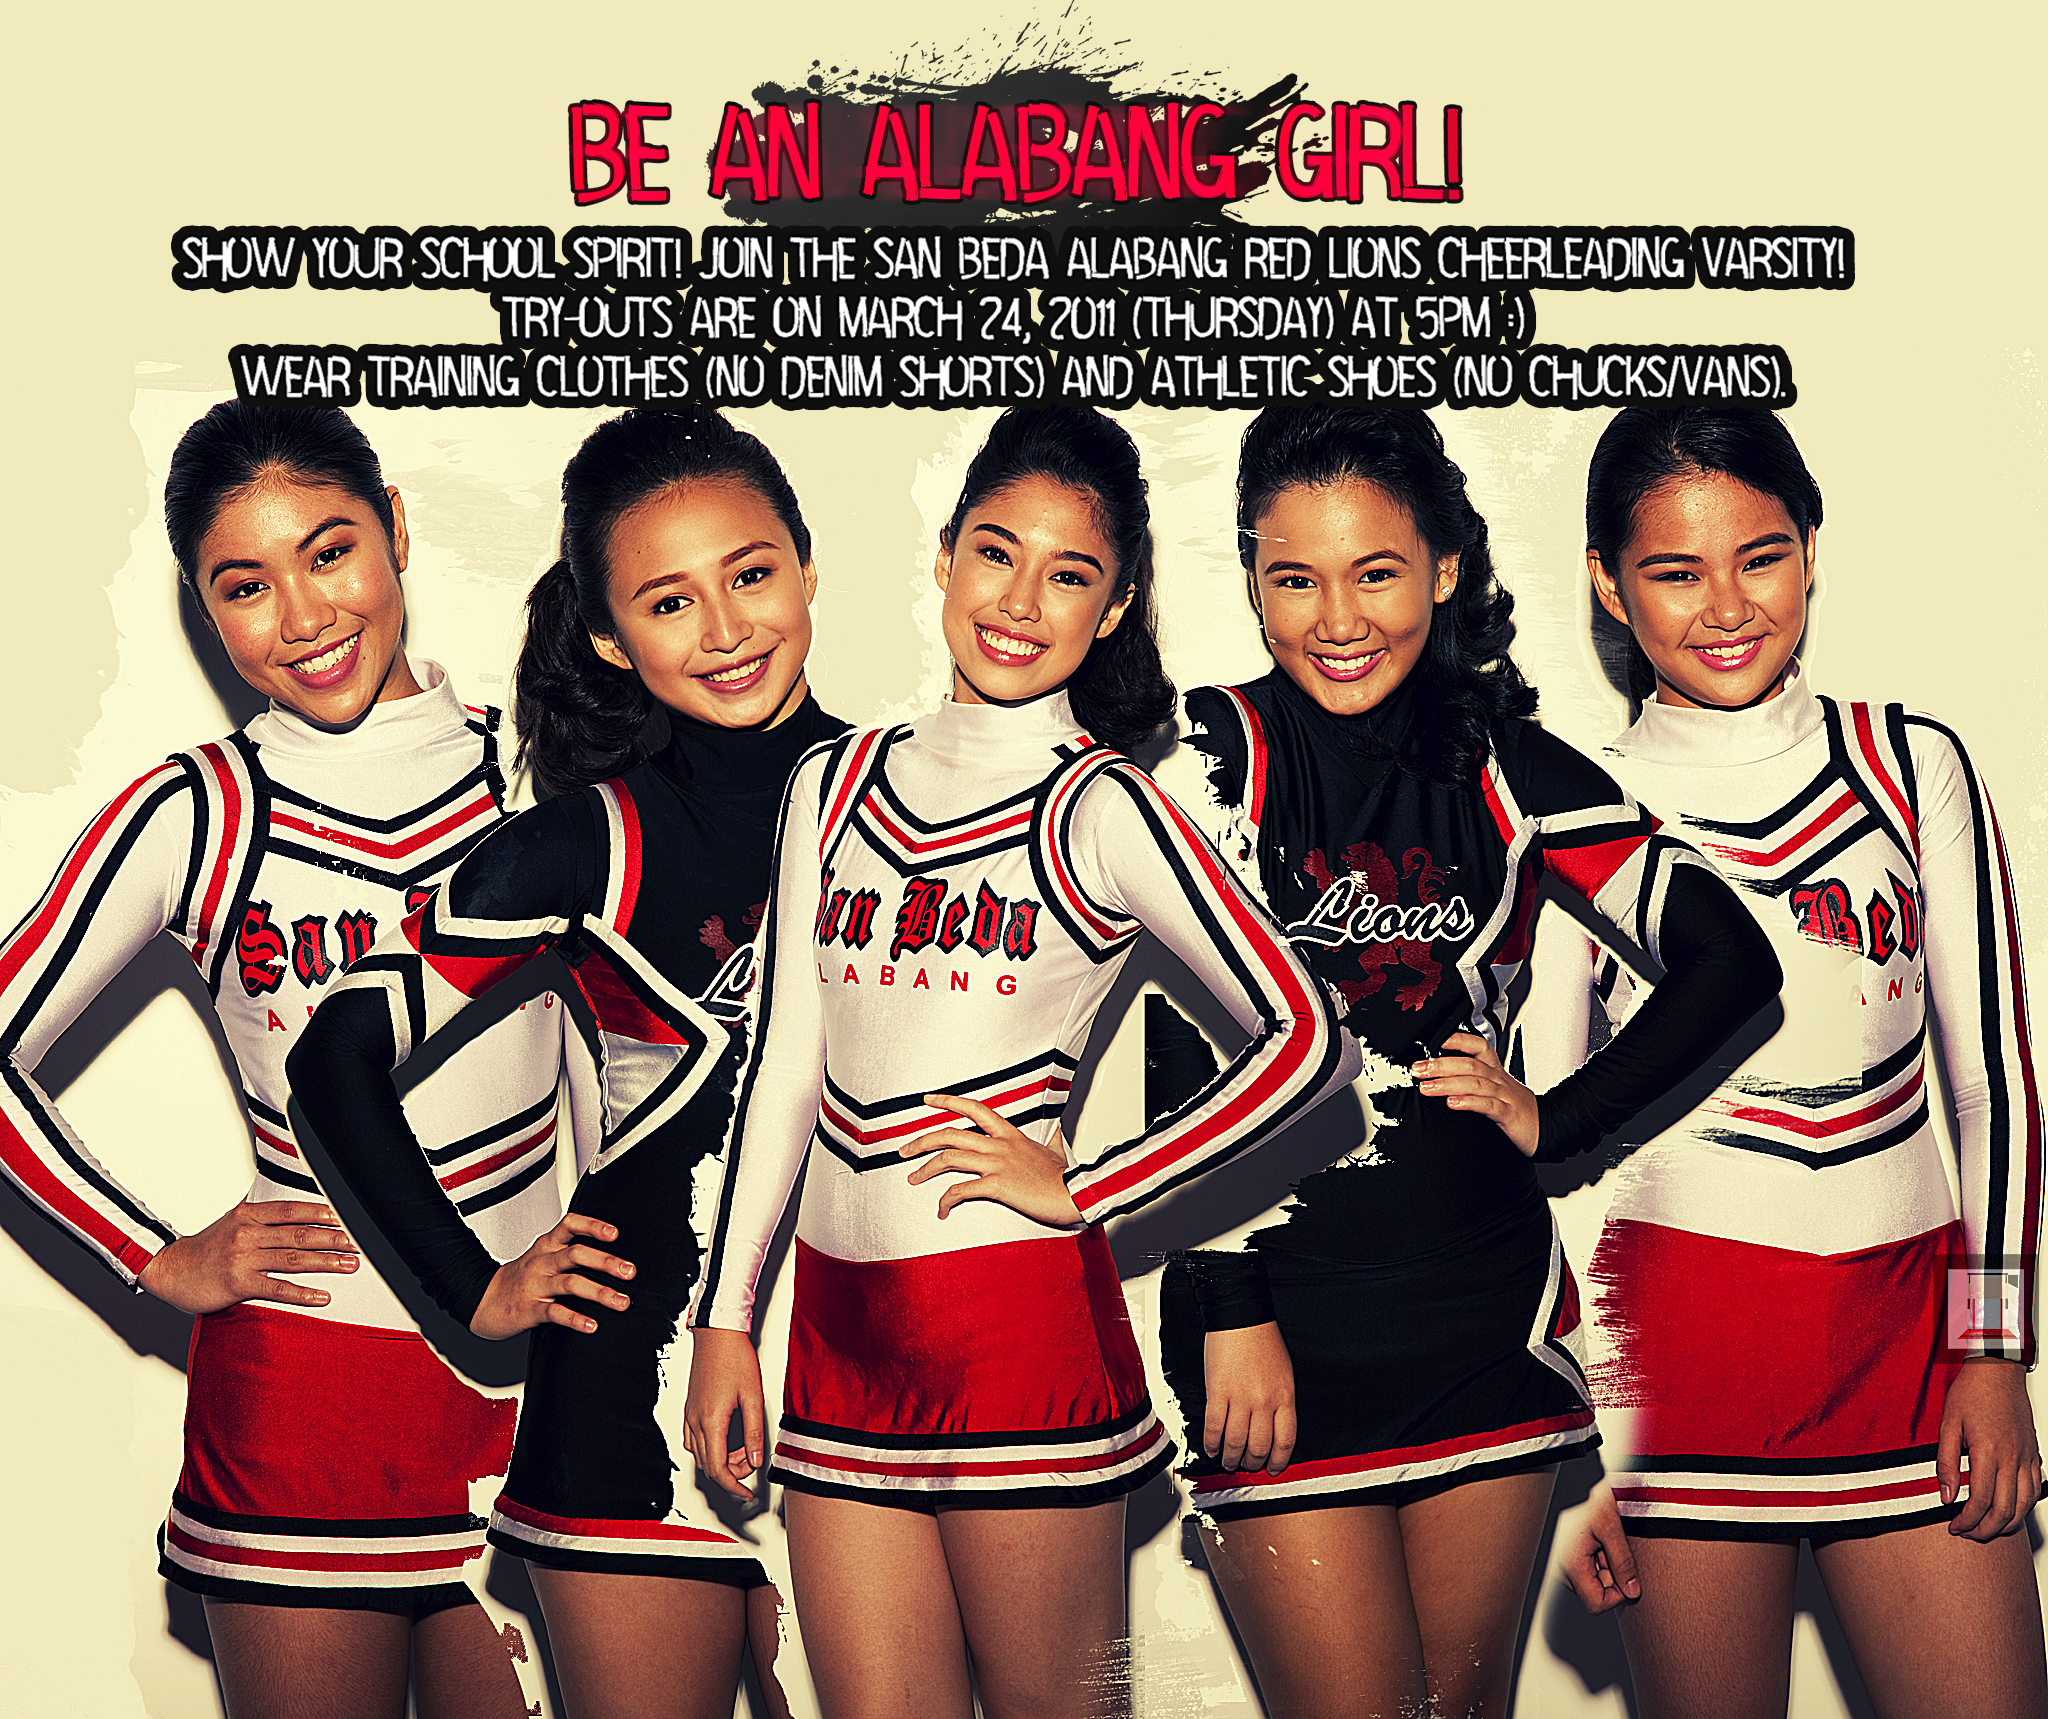 be an alabang girl by nicollearl on deviantart